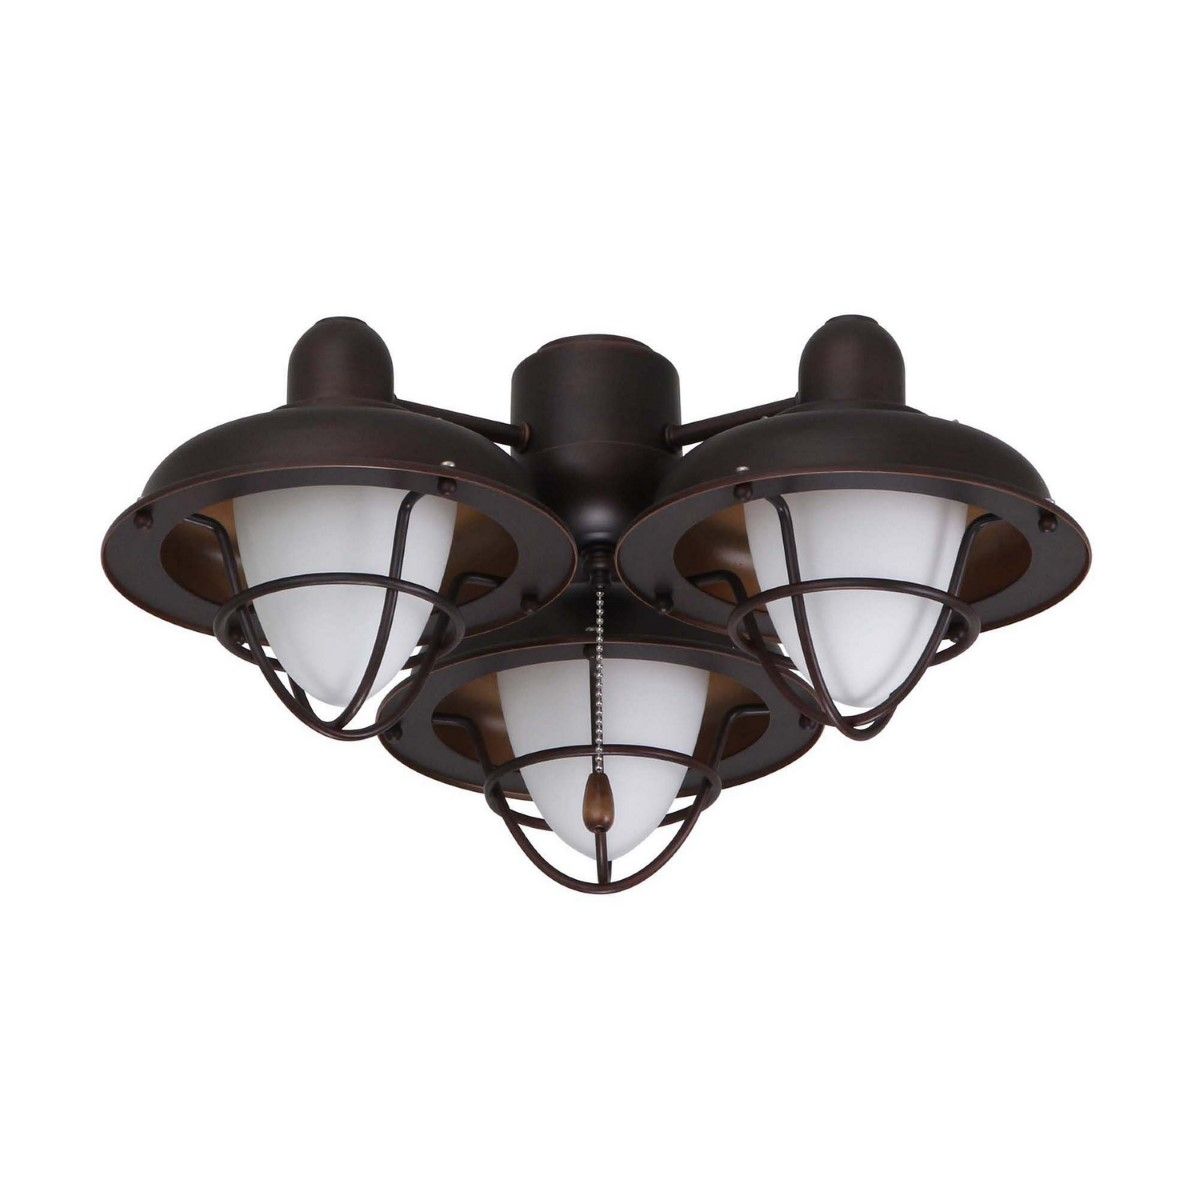 Emerson Boardwalk Outdoor Damp LED Cage Cage Light Kit with Opal Matte Shade - Oil-Rubbed Bronze (LK40ORB)